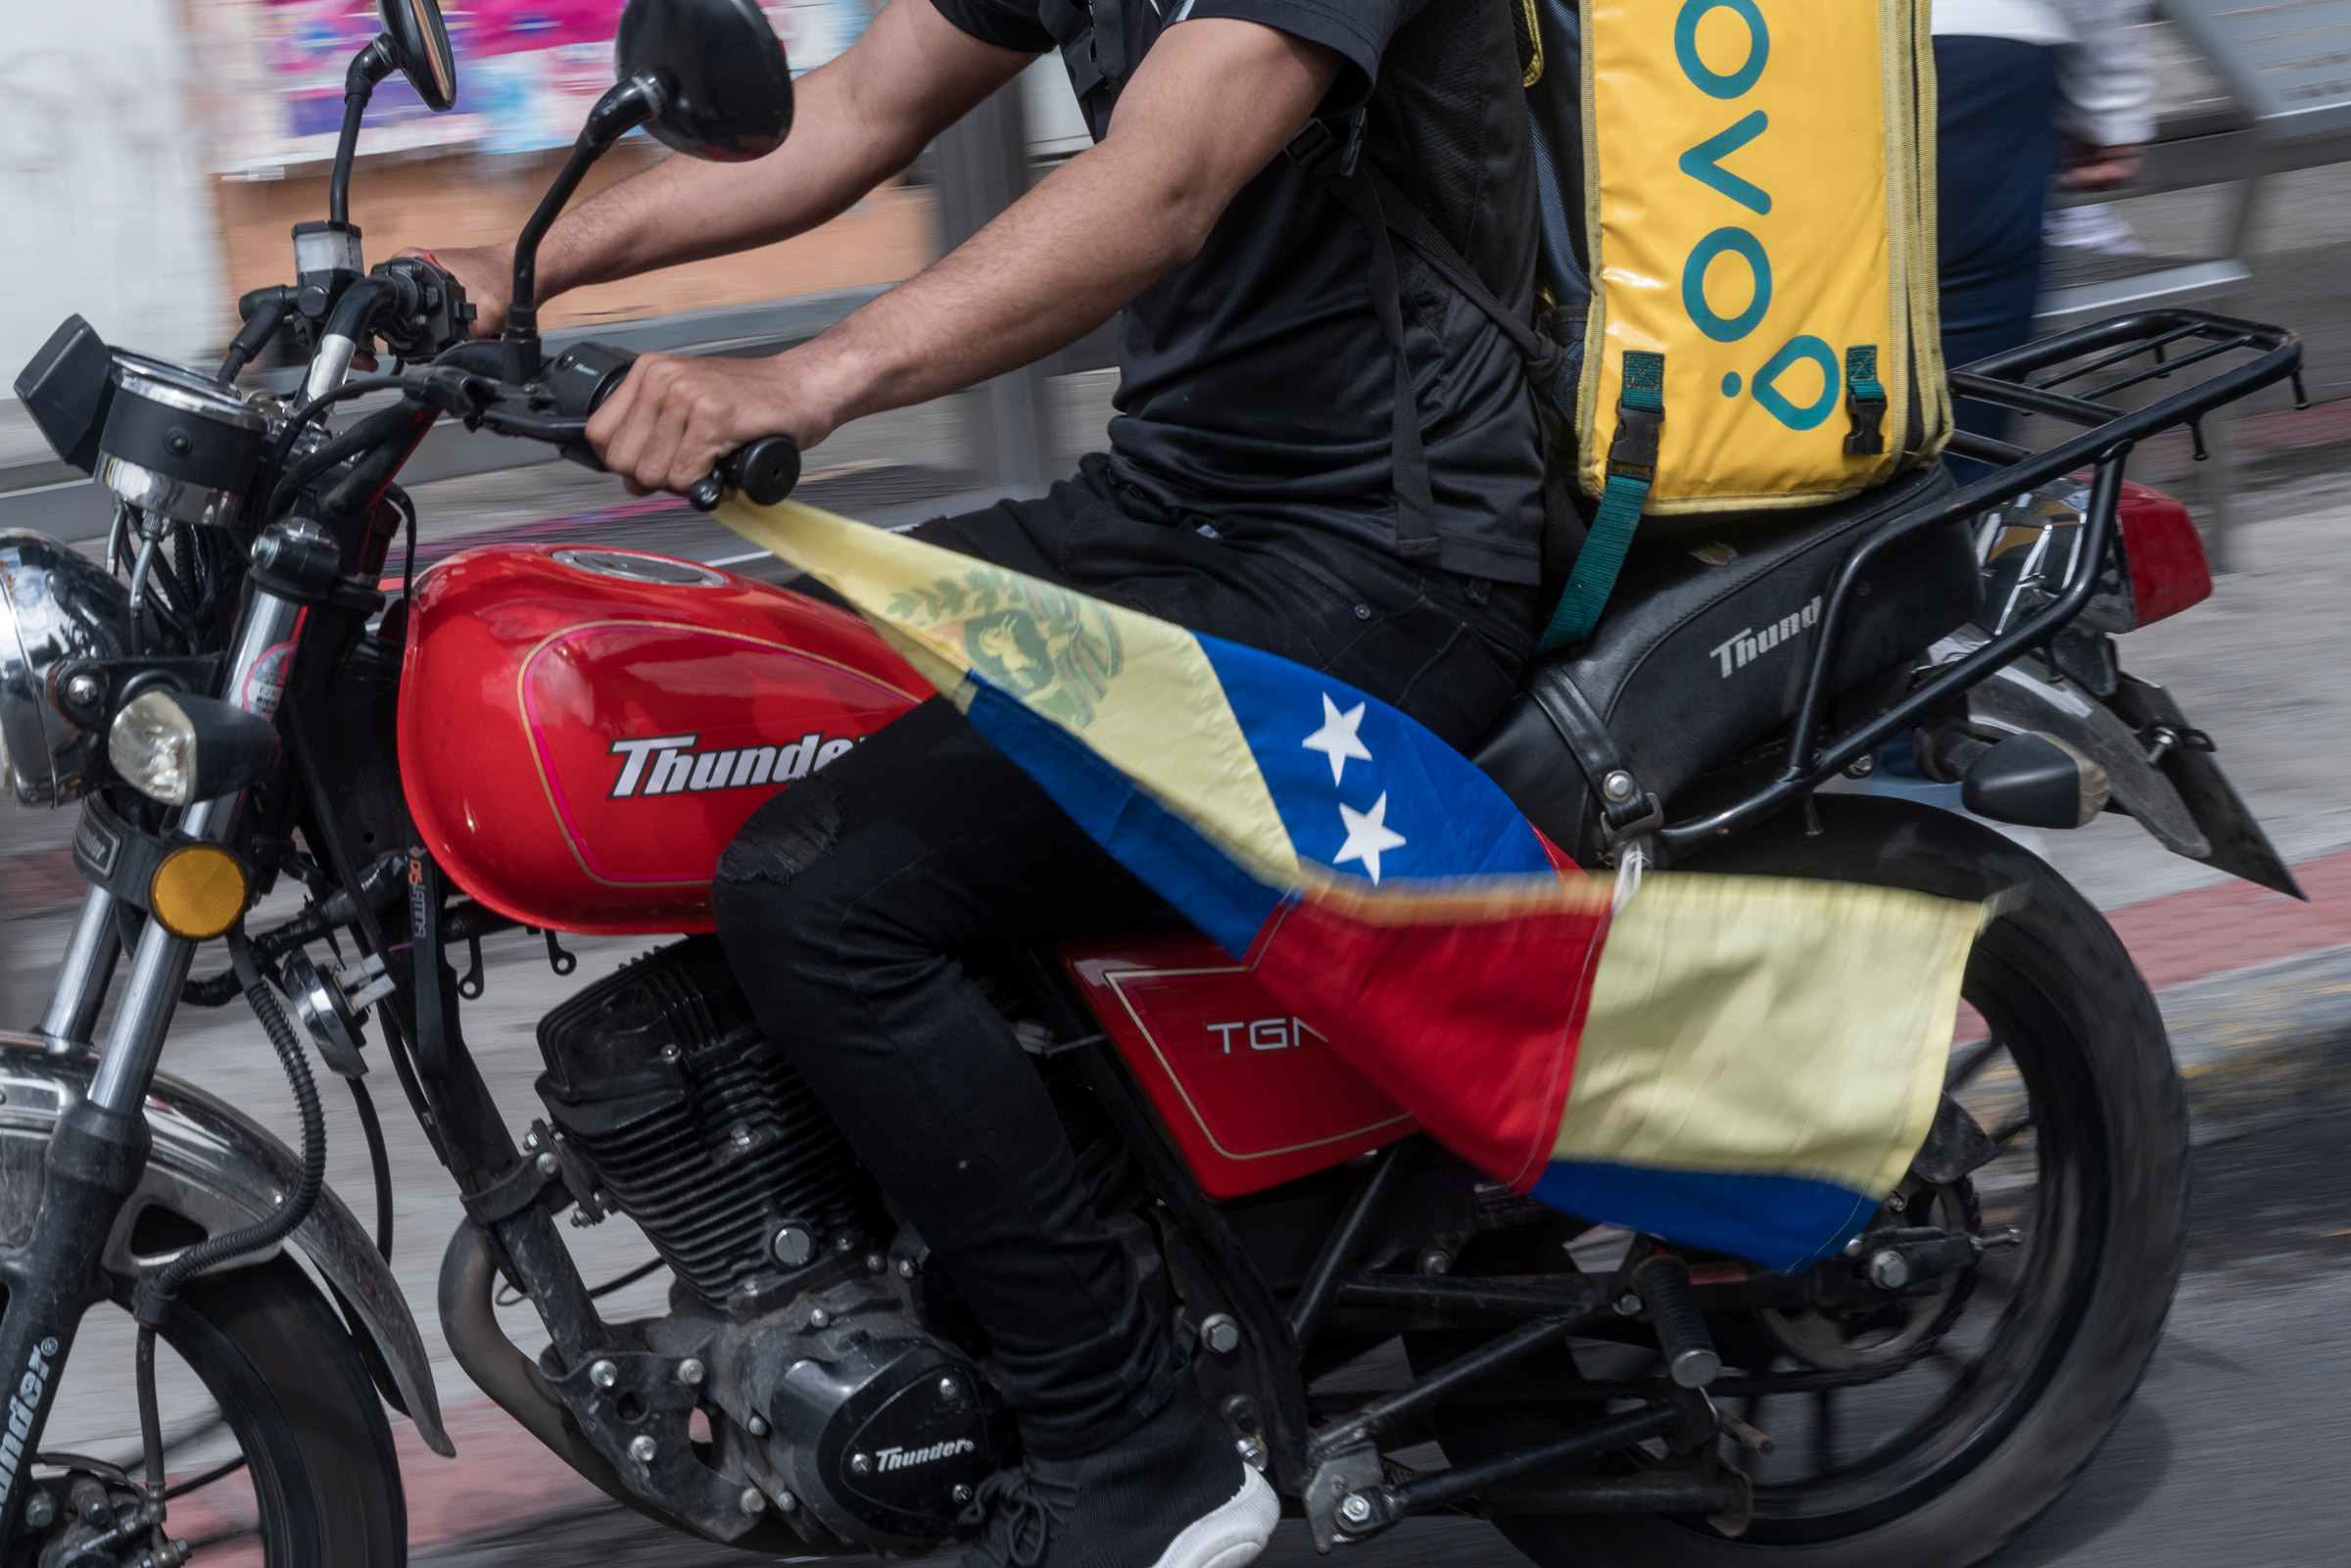 Nearly 70% of the delivery drivers in Ecuador are migrants primarily from Venezuela. Many say that they are victims of xenophobic treatment at work.